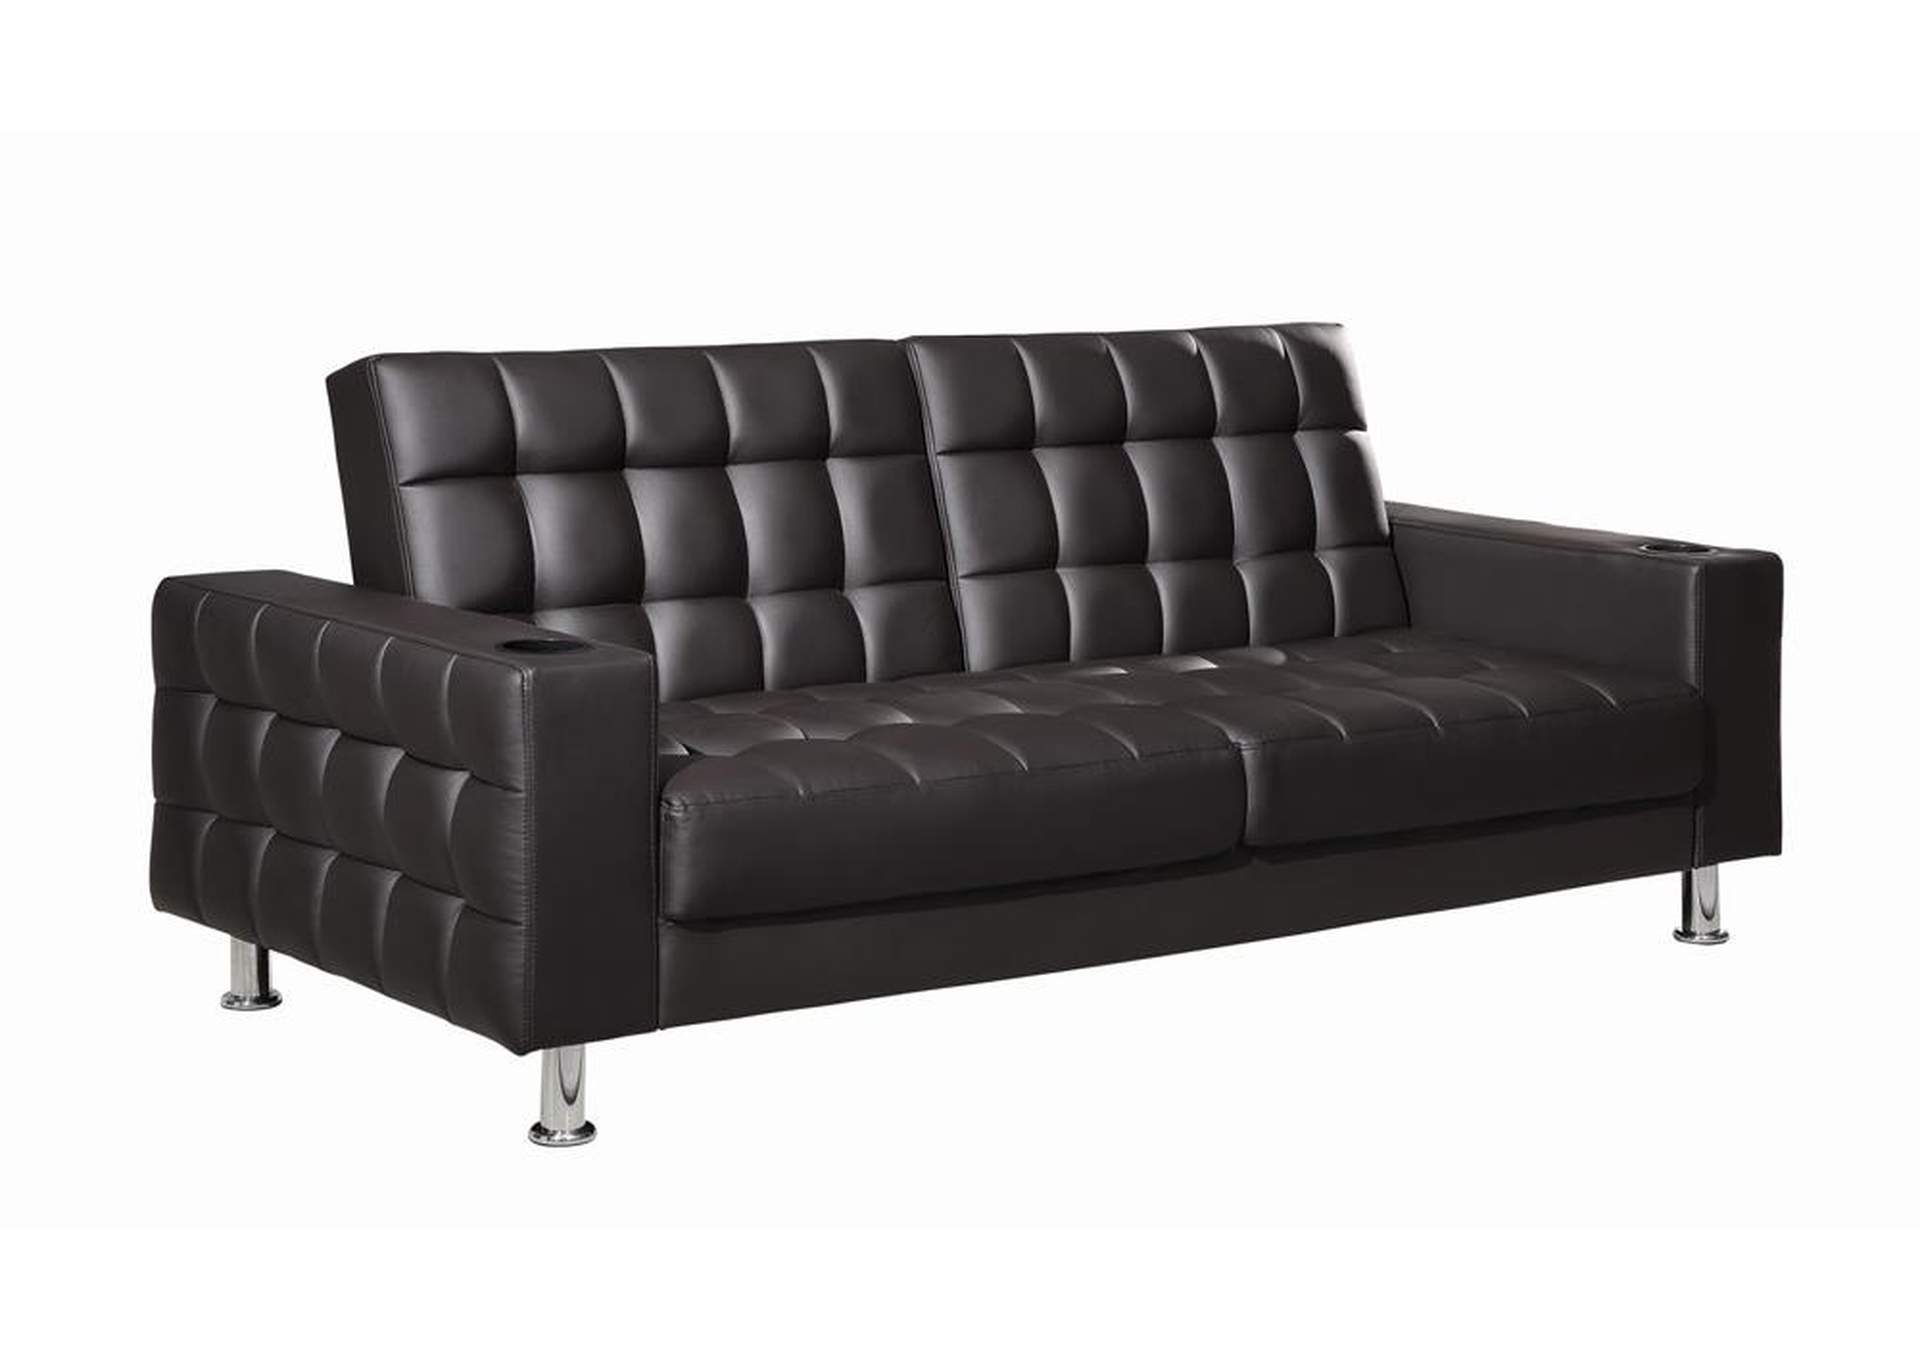 Eerie Black Brown Faux Leather Sofa Bed,Coaster Furniture